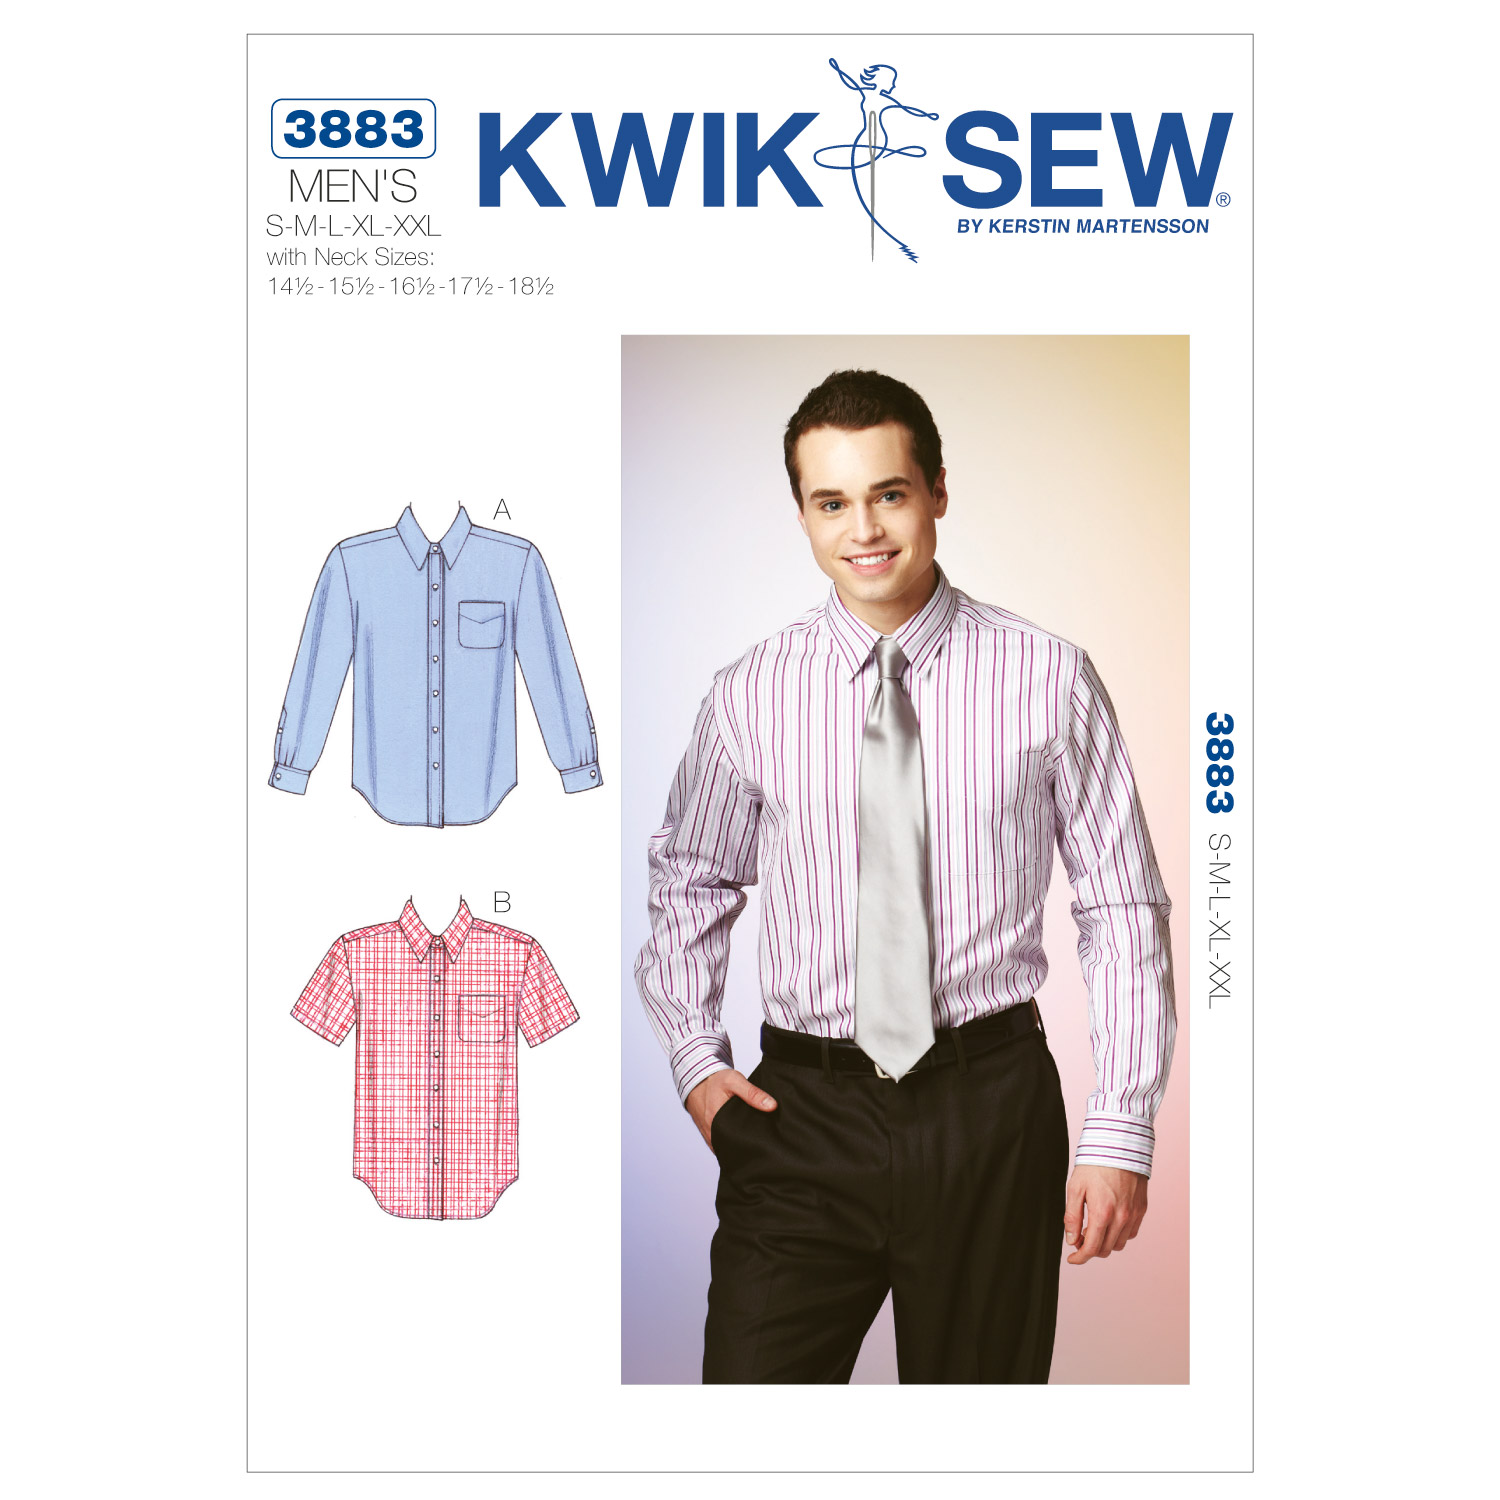 Image of Kwik Sew Mens Men's Shirt (3883) Pattern